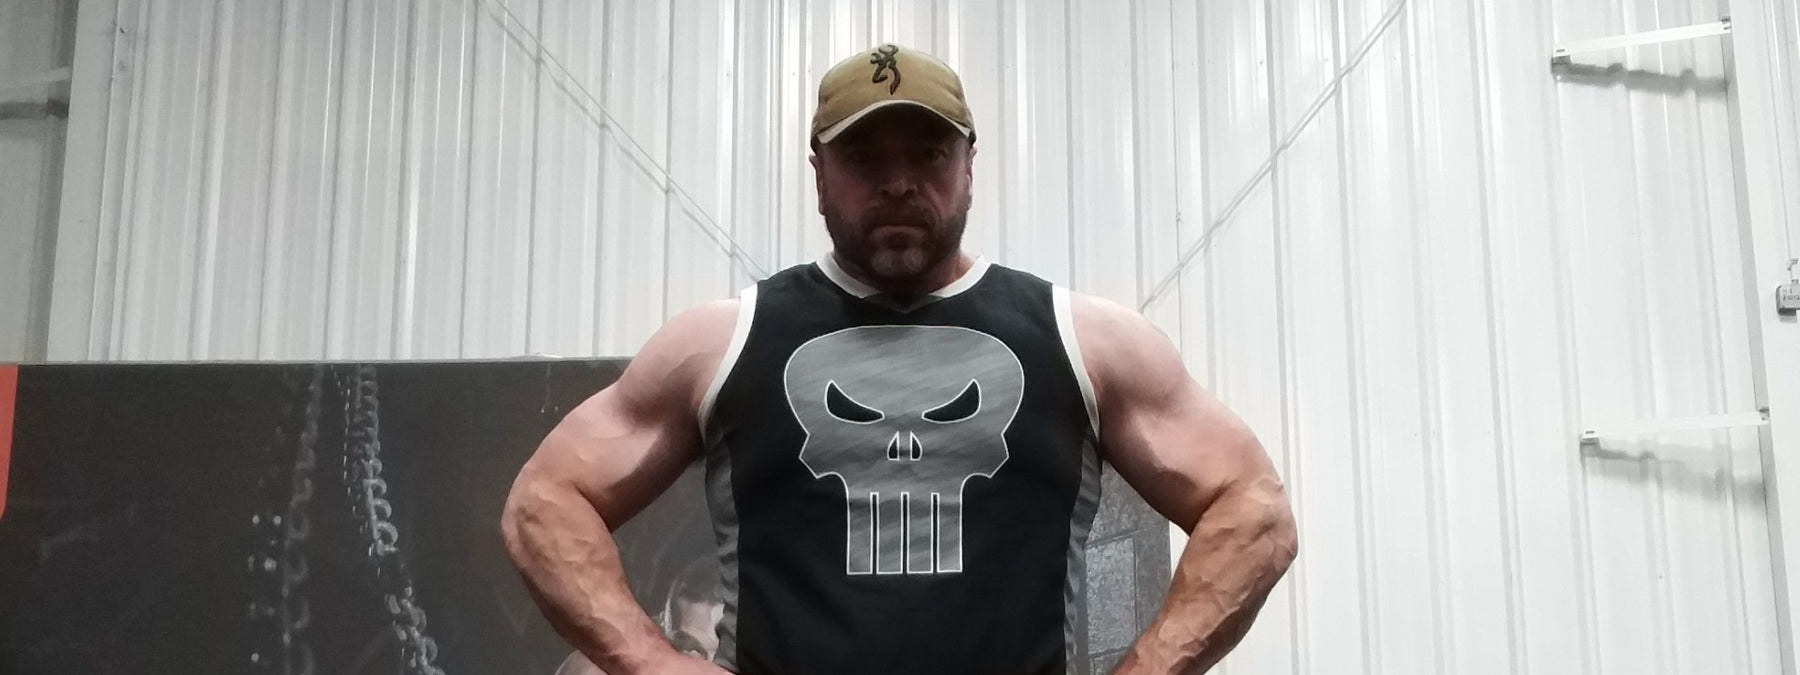 Powerlifter Steve Shaw Loses 104 Pounds